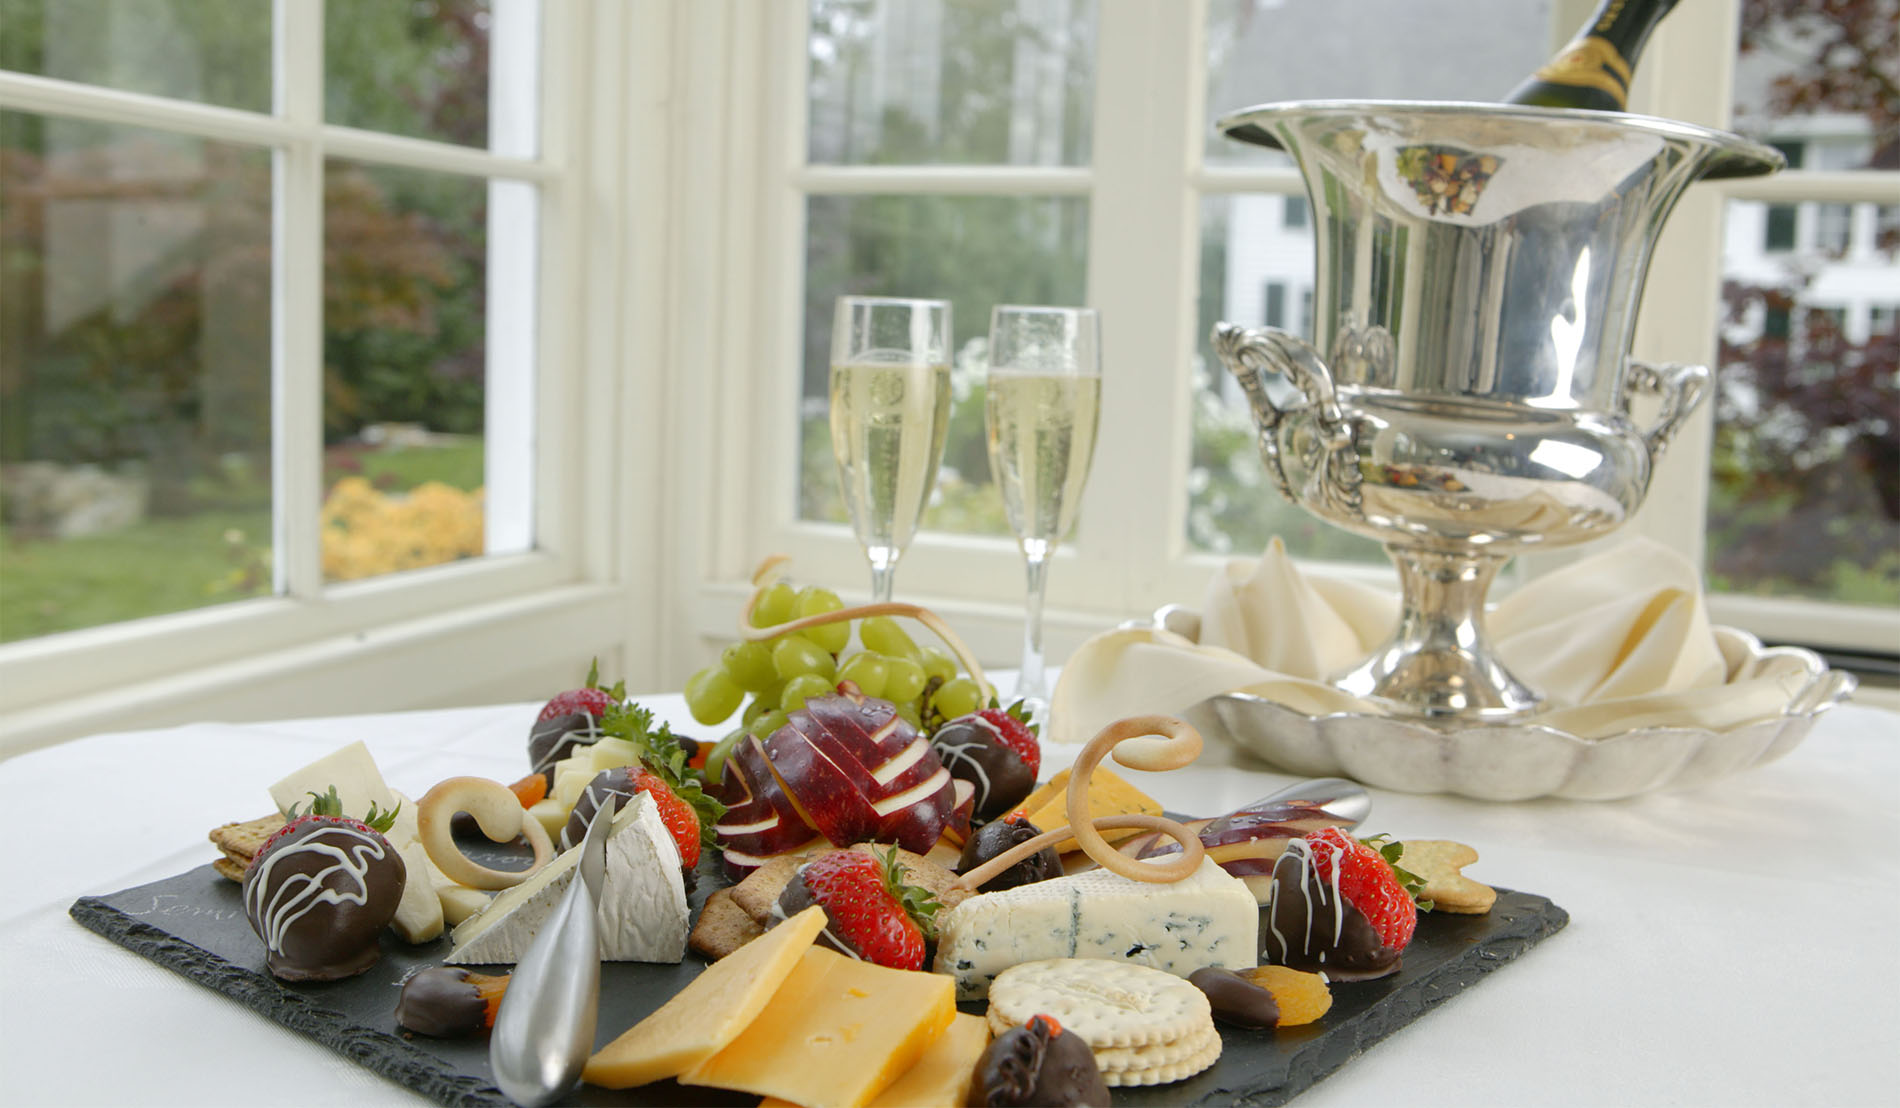 Romantic package in-room extra showing fruit, cheese, and chocolate dipped strawberry plate and champagne